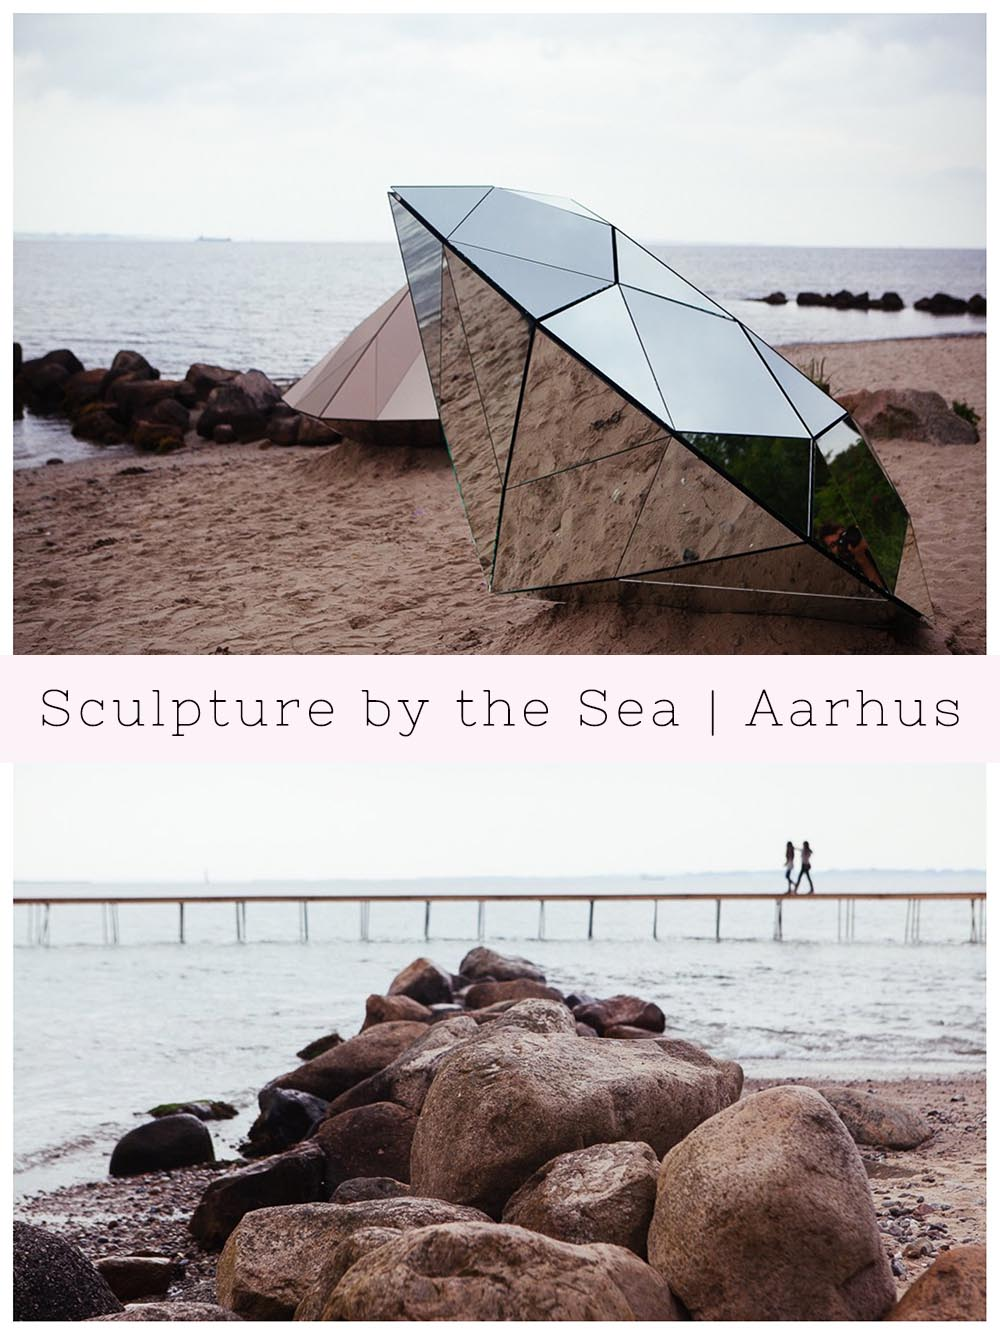 Why to visit Aarhus in Denmark during the Sculpture by the Sea exhibition.